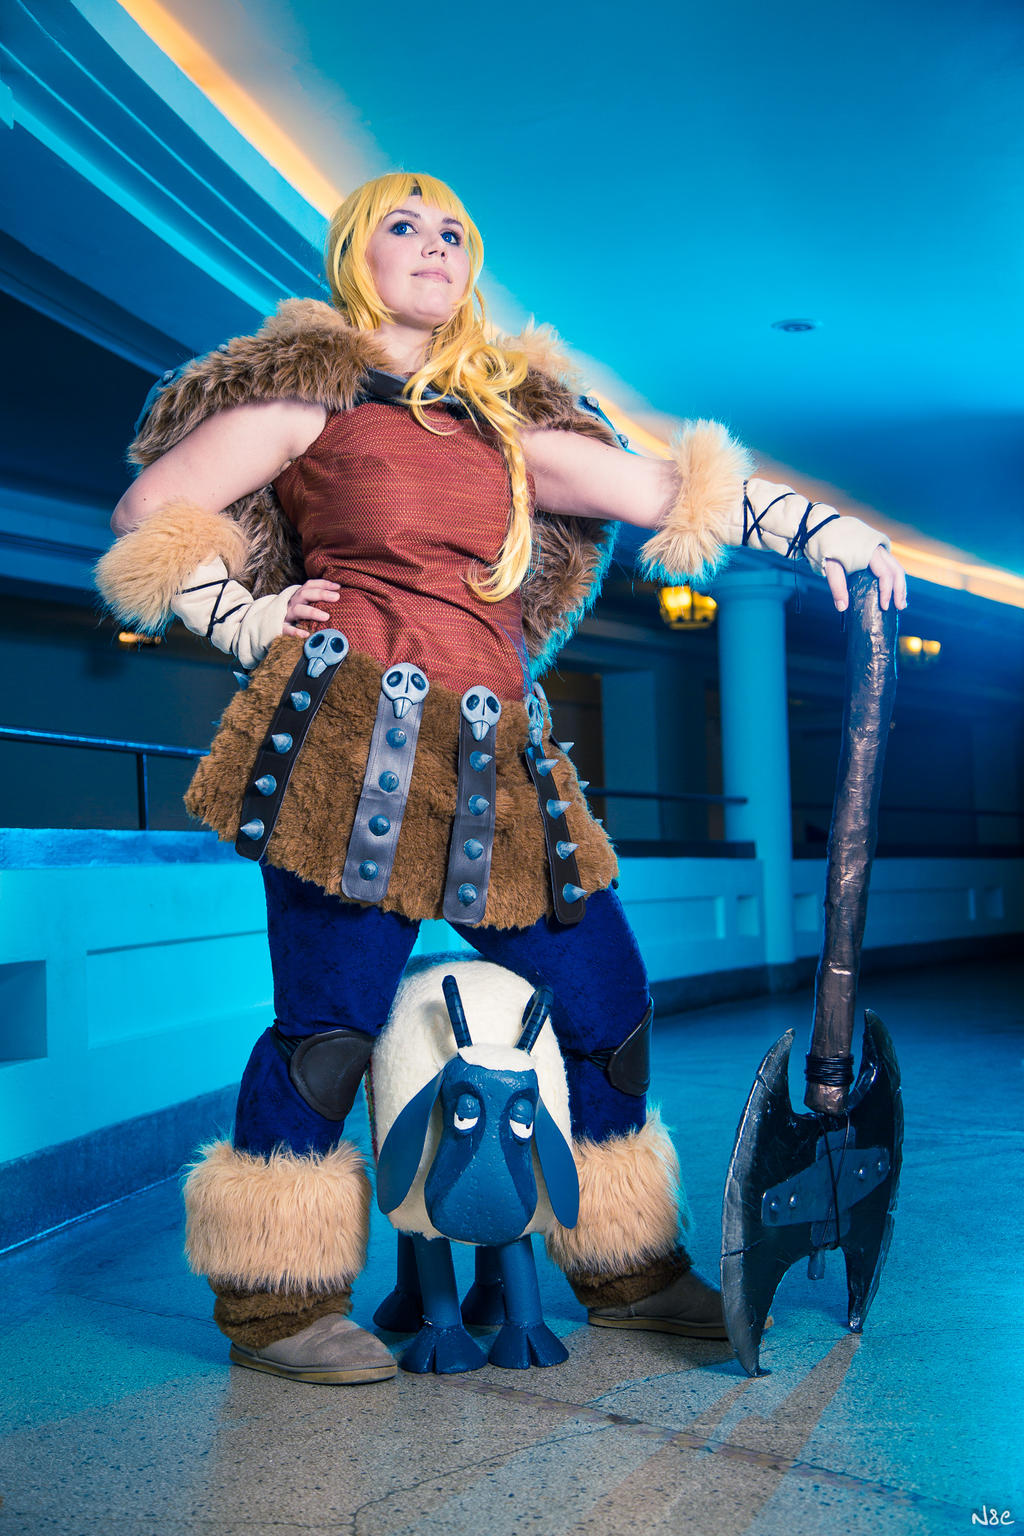 Uncategorized How To Train Your Dragon Astrid astrid from how to train your dragon 2 cosplay by peytoncosplay on peytoncosplay